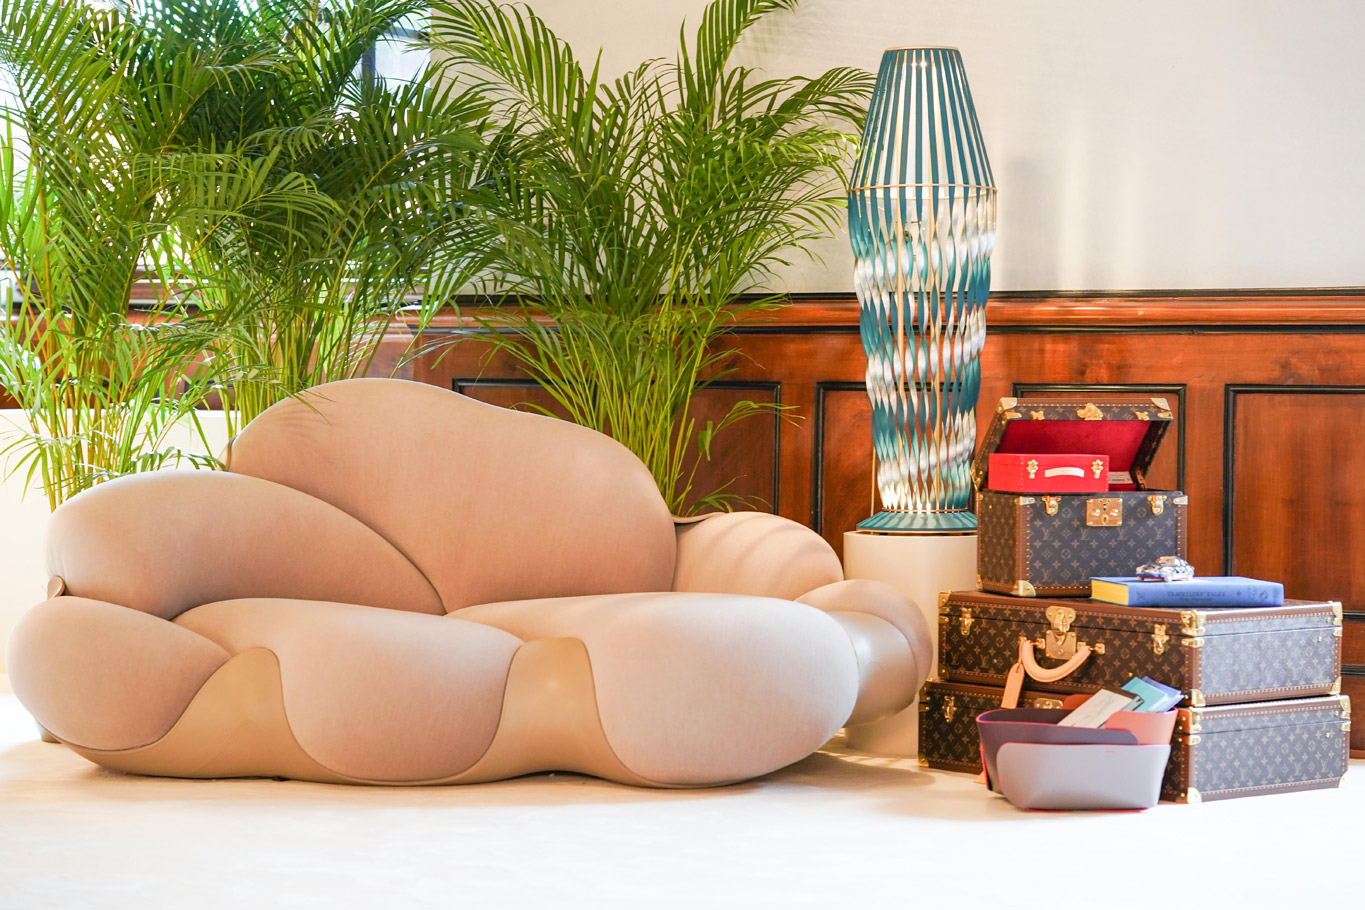 Sofa in flesh pink from the Louis Vuitton Haute Joaillerie exhibition in Shanghai with two tropical grass-green greasy plants in the background, a glass lamp with 3 Louis Vuitton trunks in the bottom right.